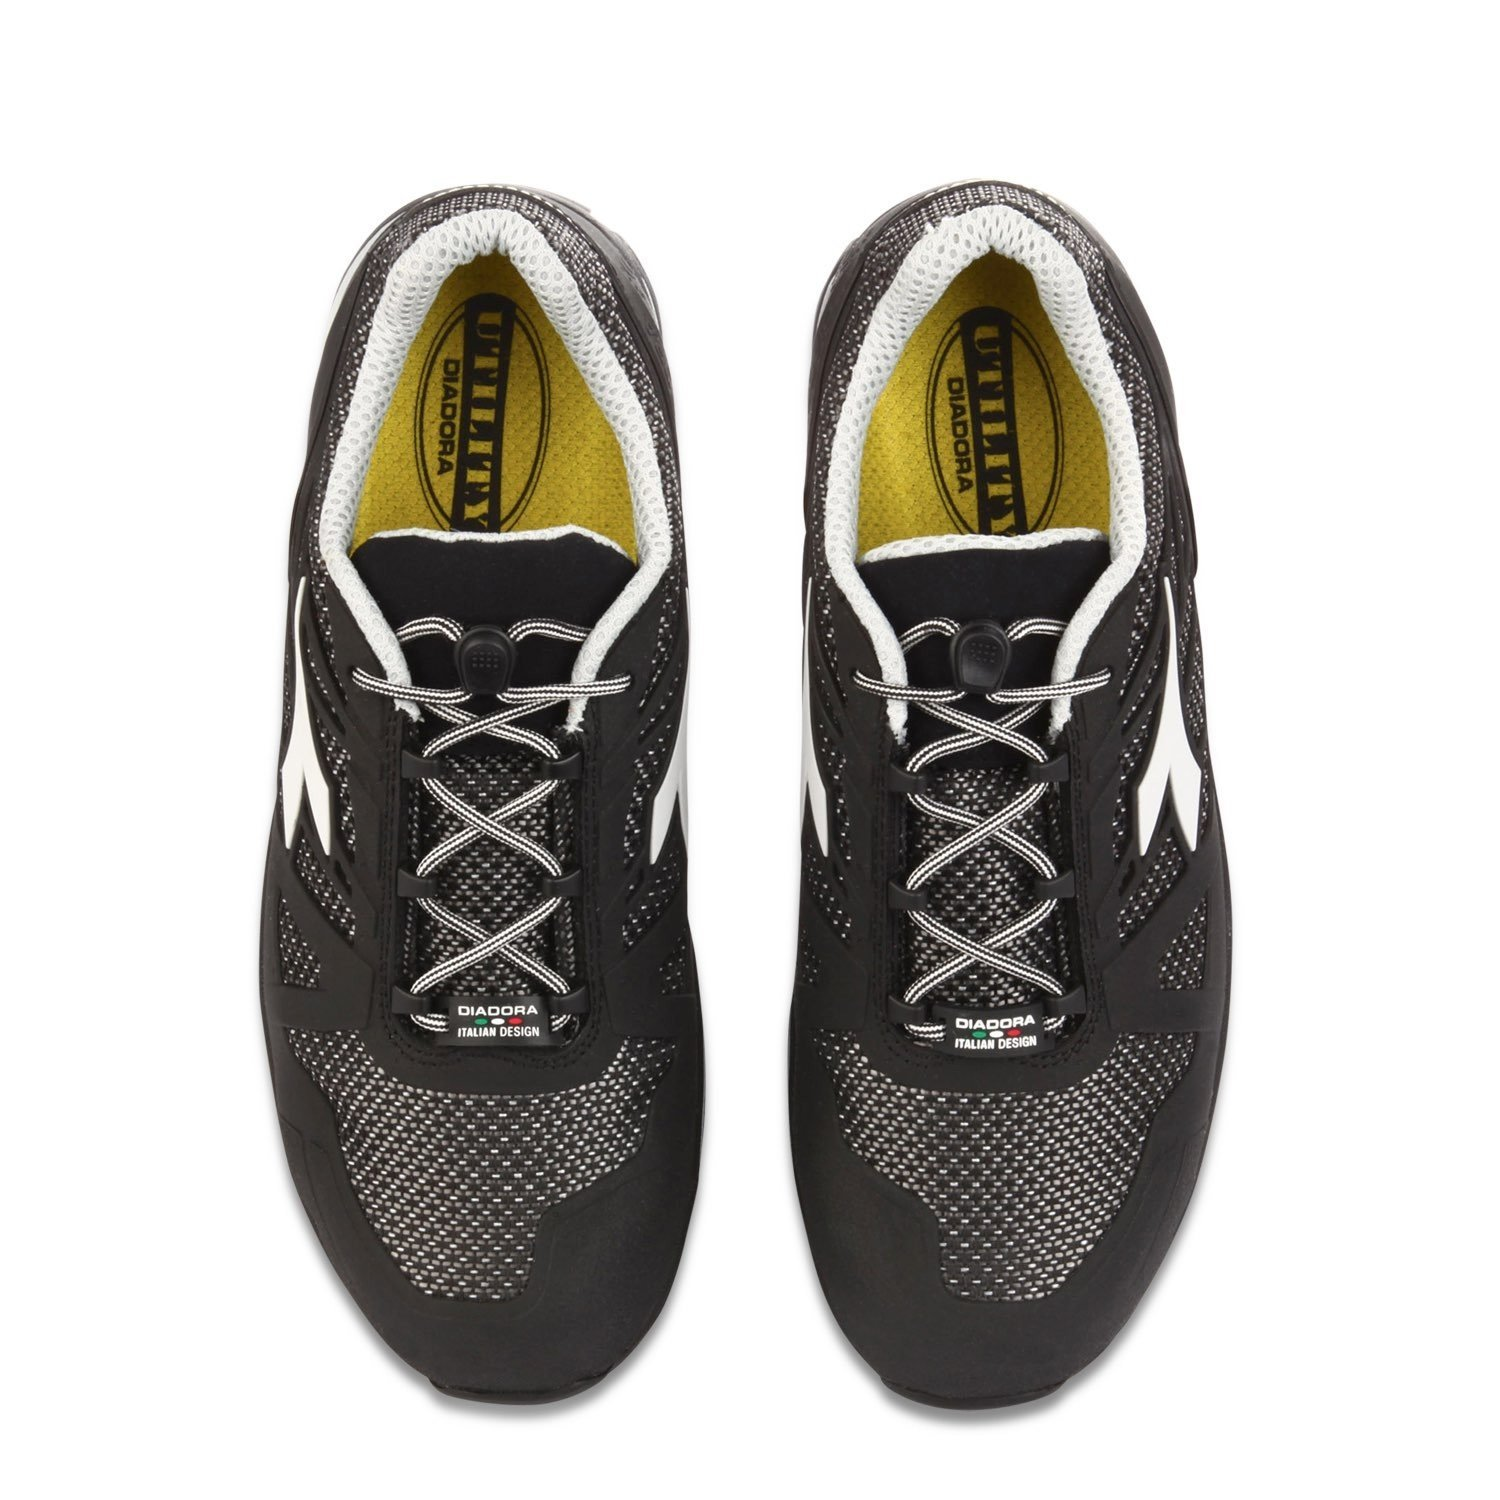 Diadora D-Trail Bright Low S1p Sra HRO Scarpe Antinfortunistiche Uomo   Amazon.it  Scarpe e borse 438e807b6d3